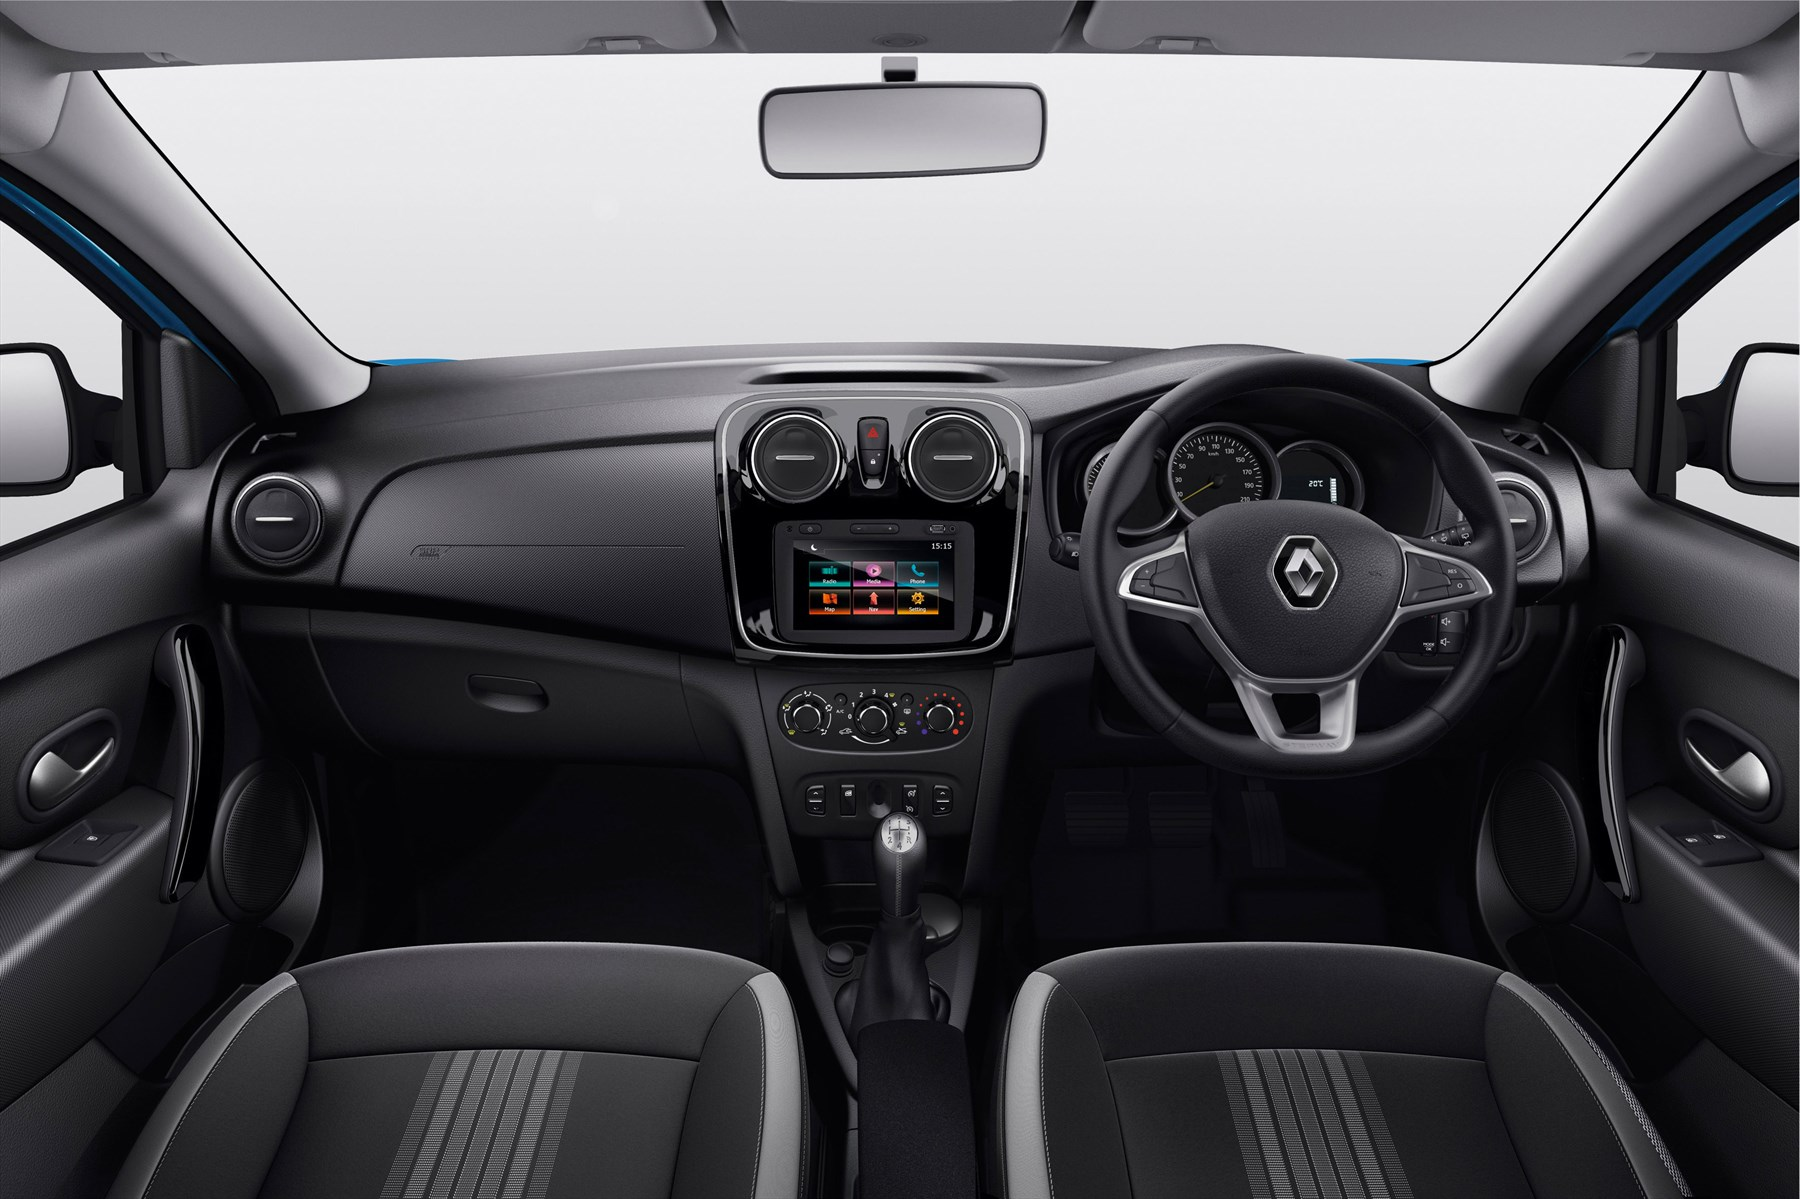 Renault Sandero Range Even More Attractive With The Launch